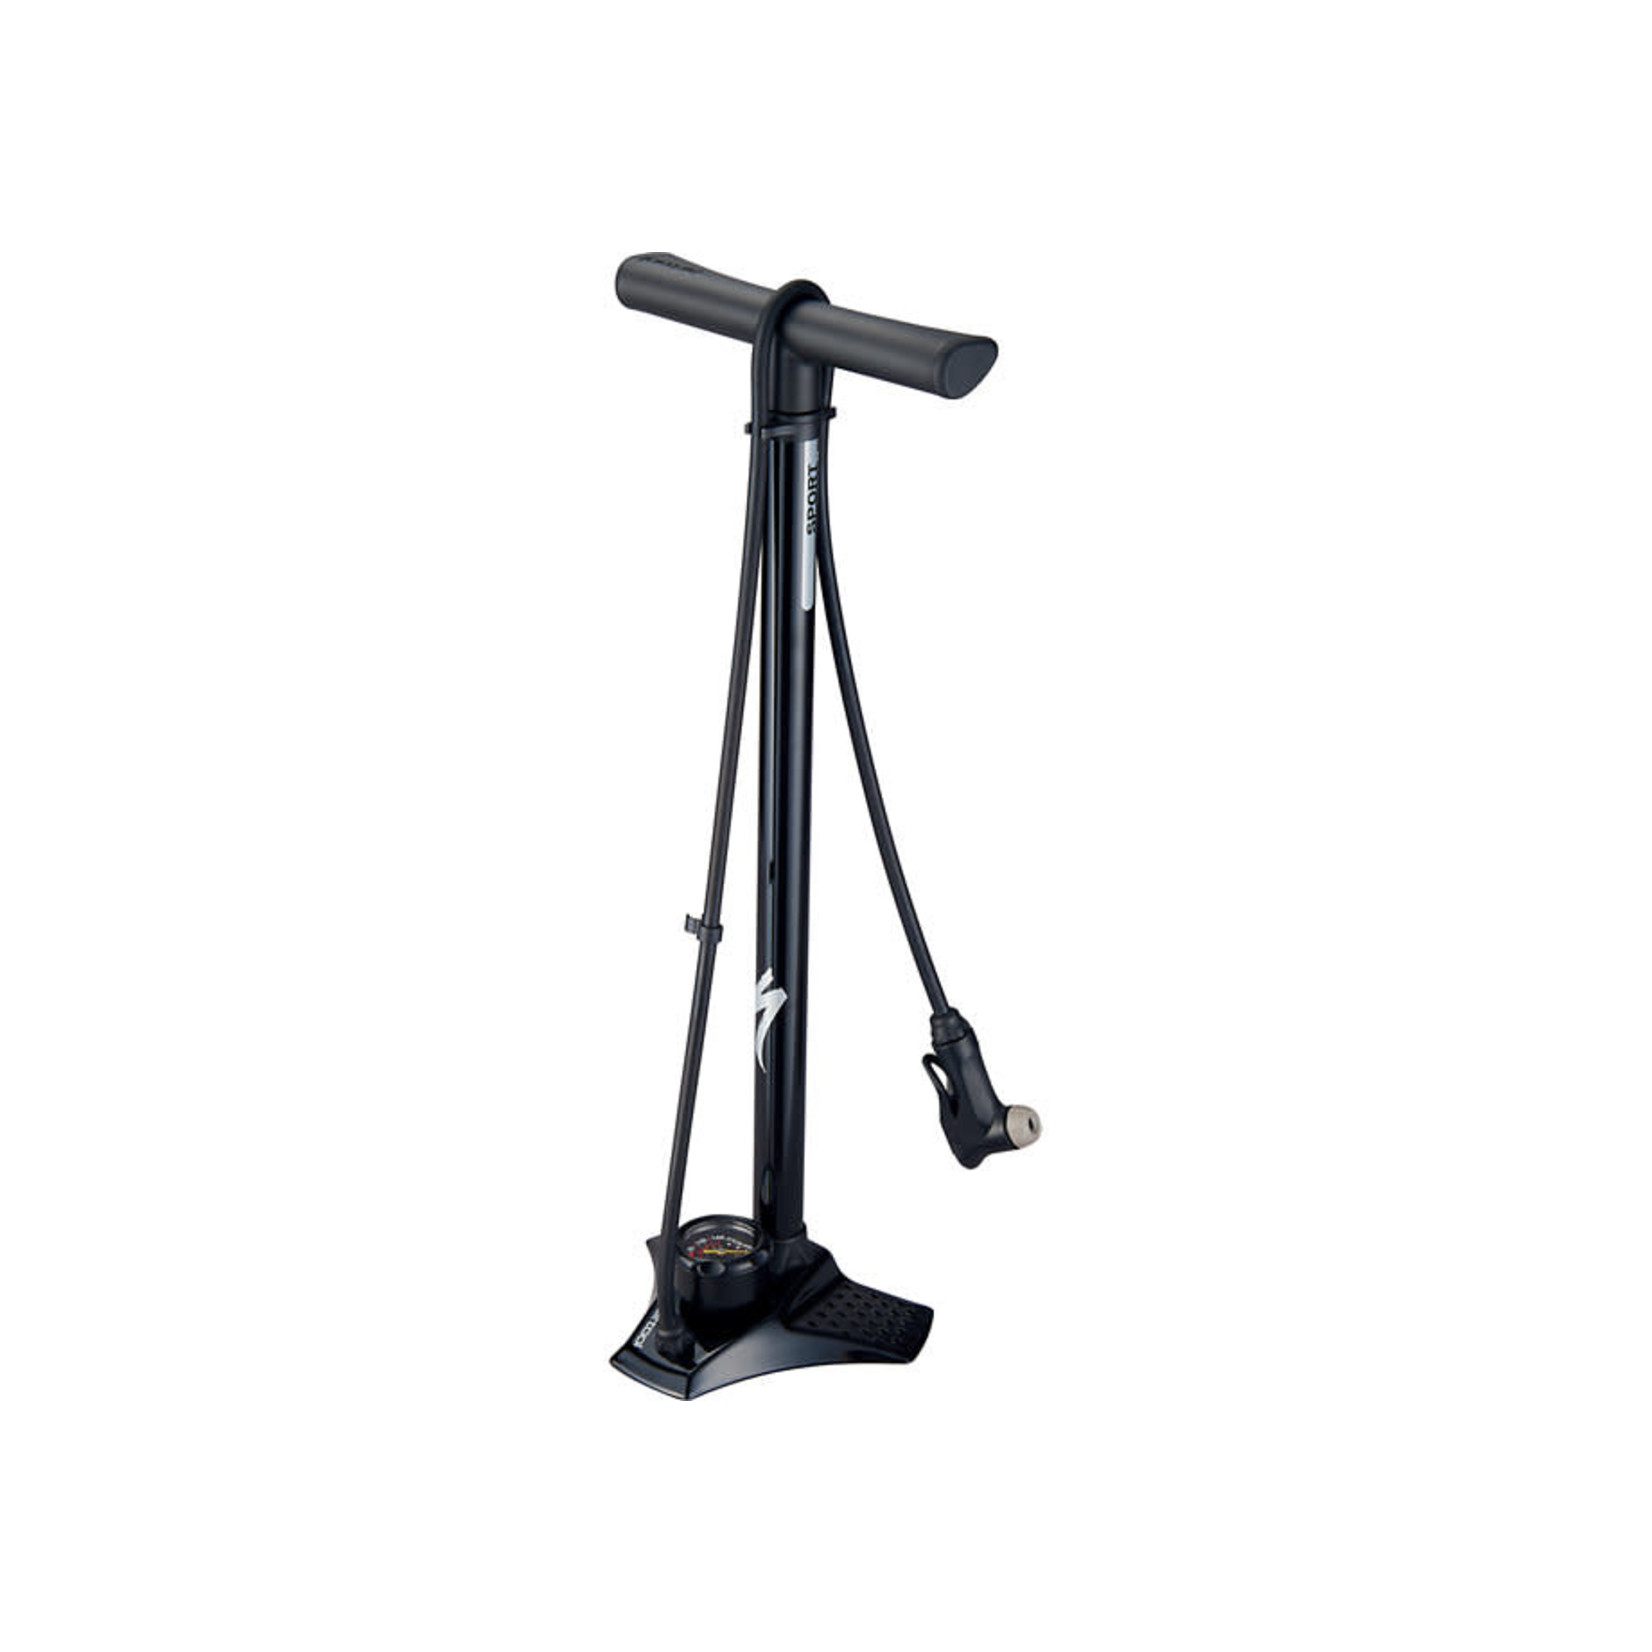 Specialized Specialized Airtool Sport Switchhitter II Floor Pump, Black